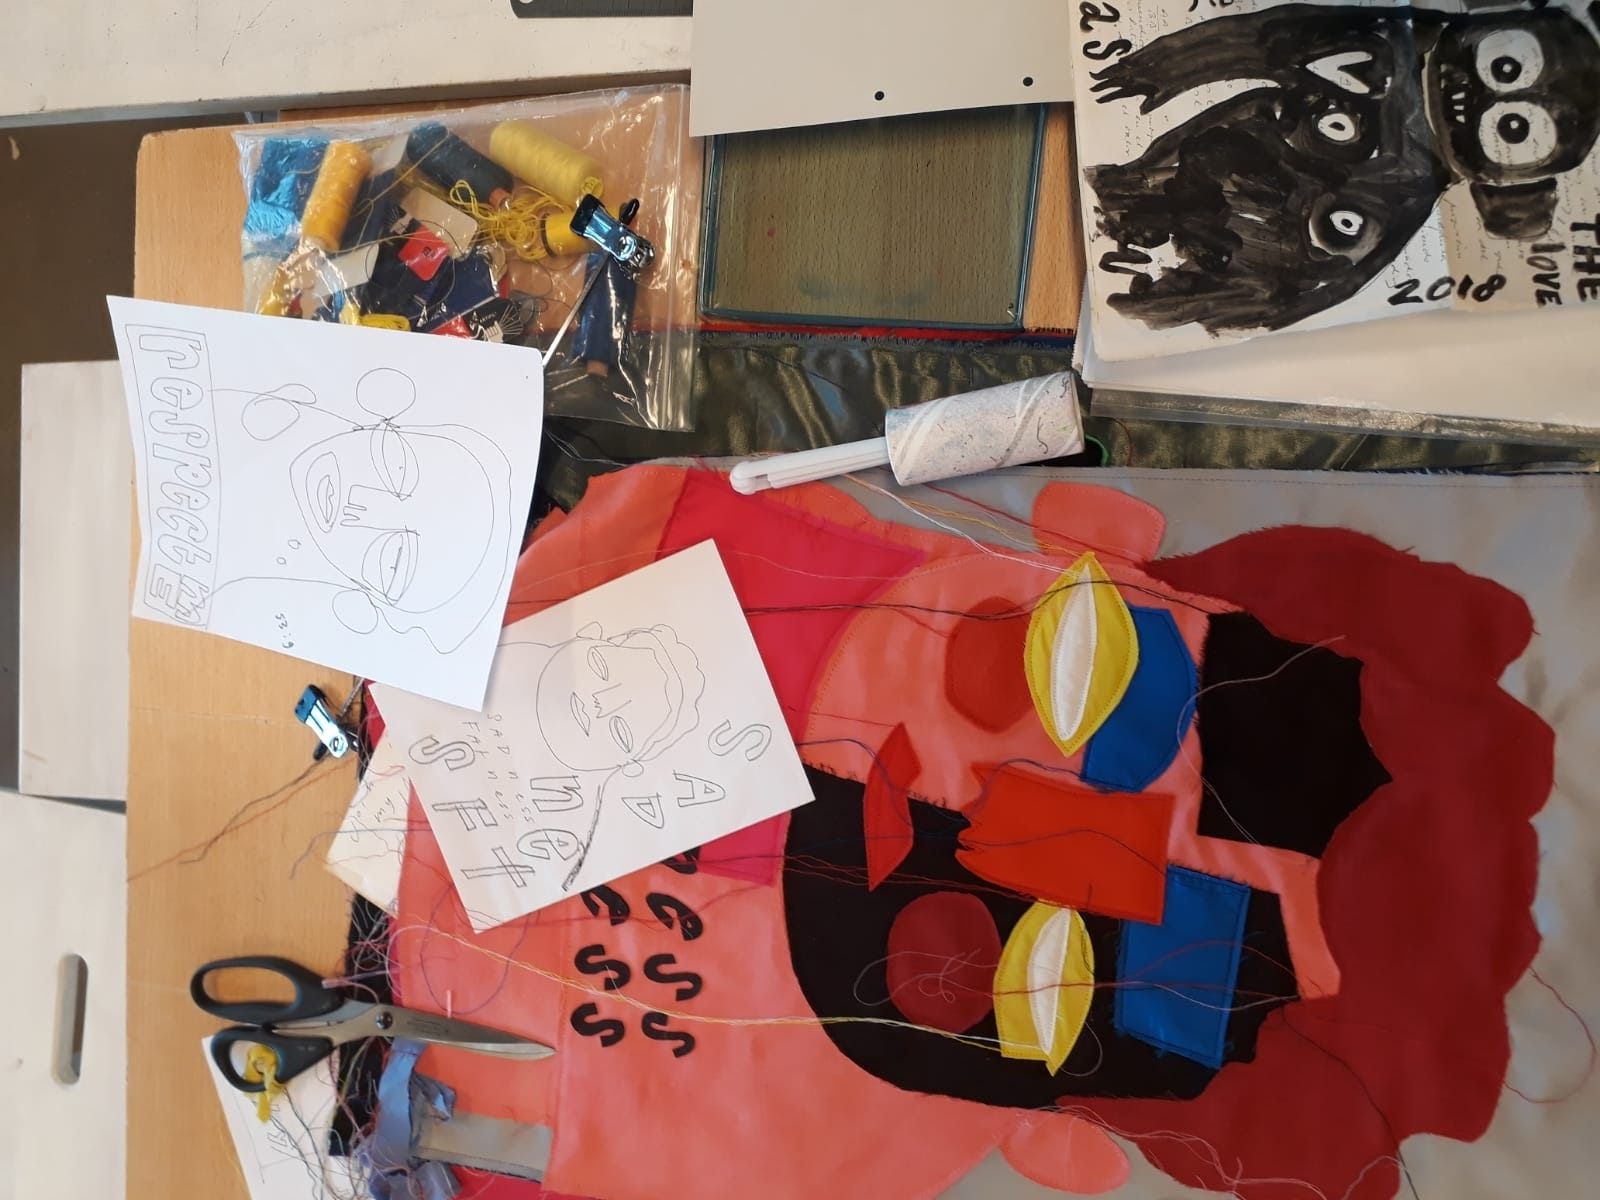 "This picture shows a close-up of one of the quilts Bas Kosters Studio is still working on with the original drawings besides it. It depicts a face in red, pink, black, yellow and blue, with some words next to it (""sadness"")."